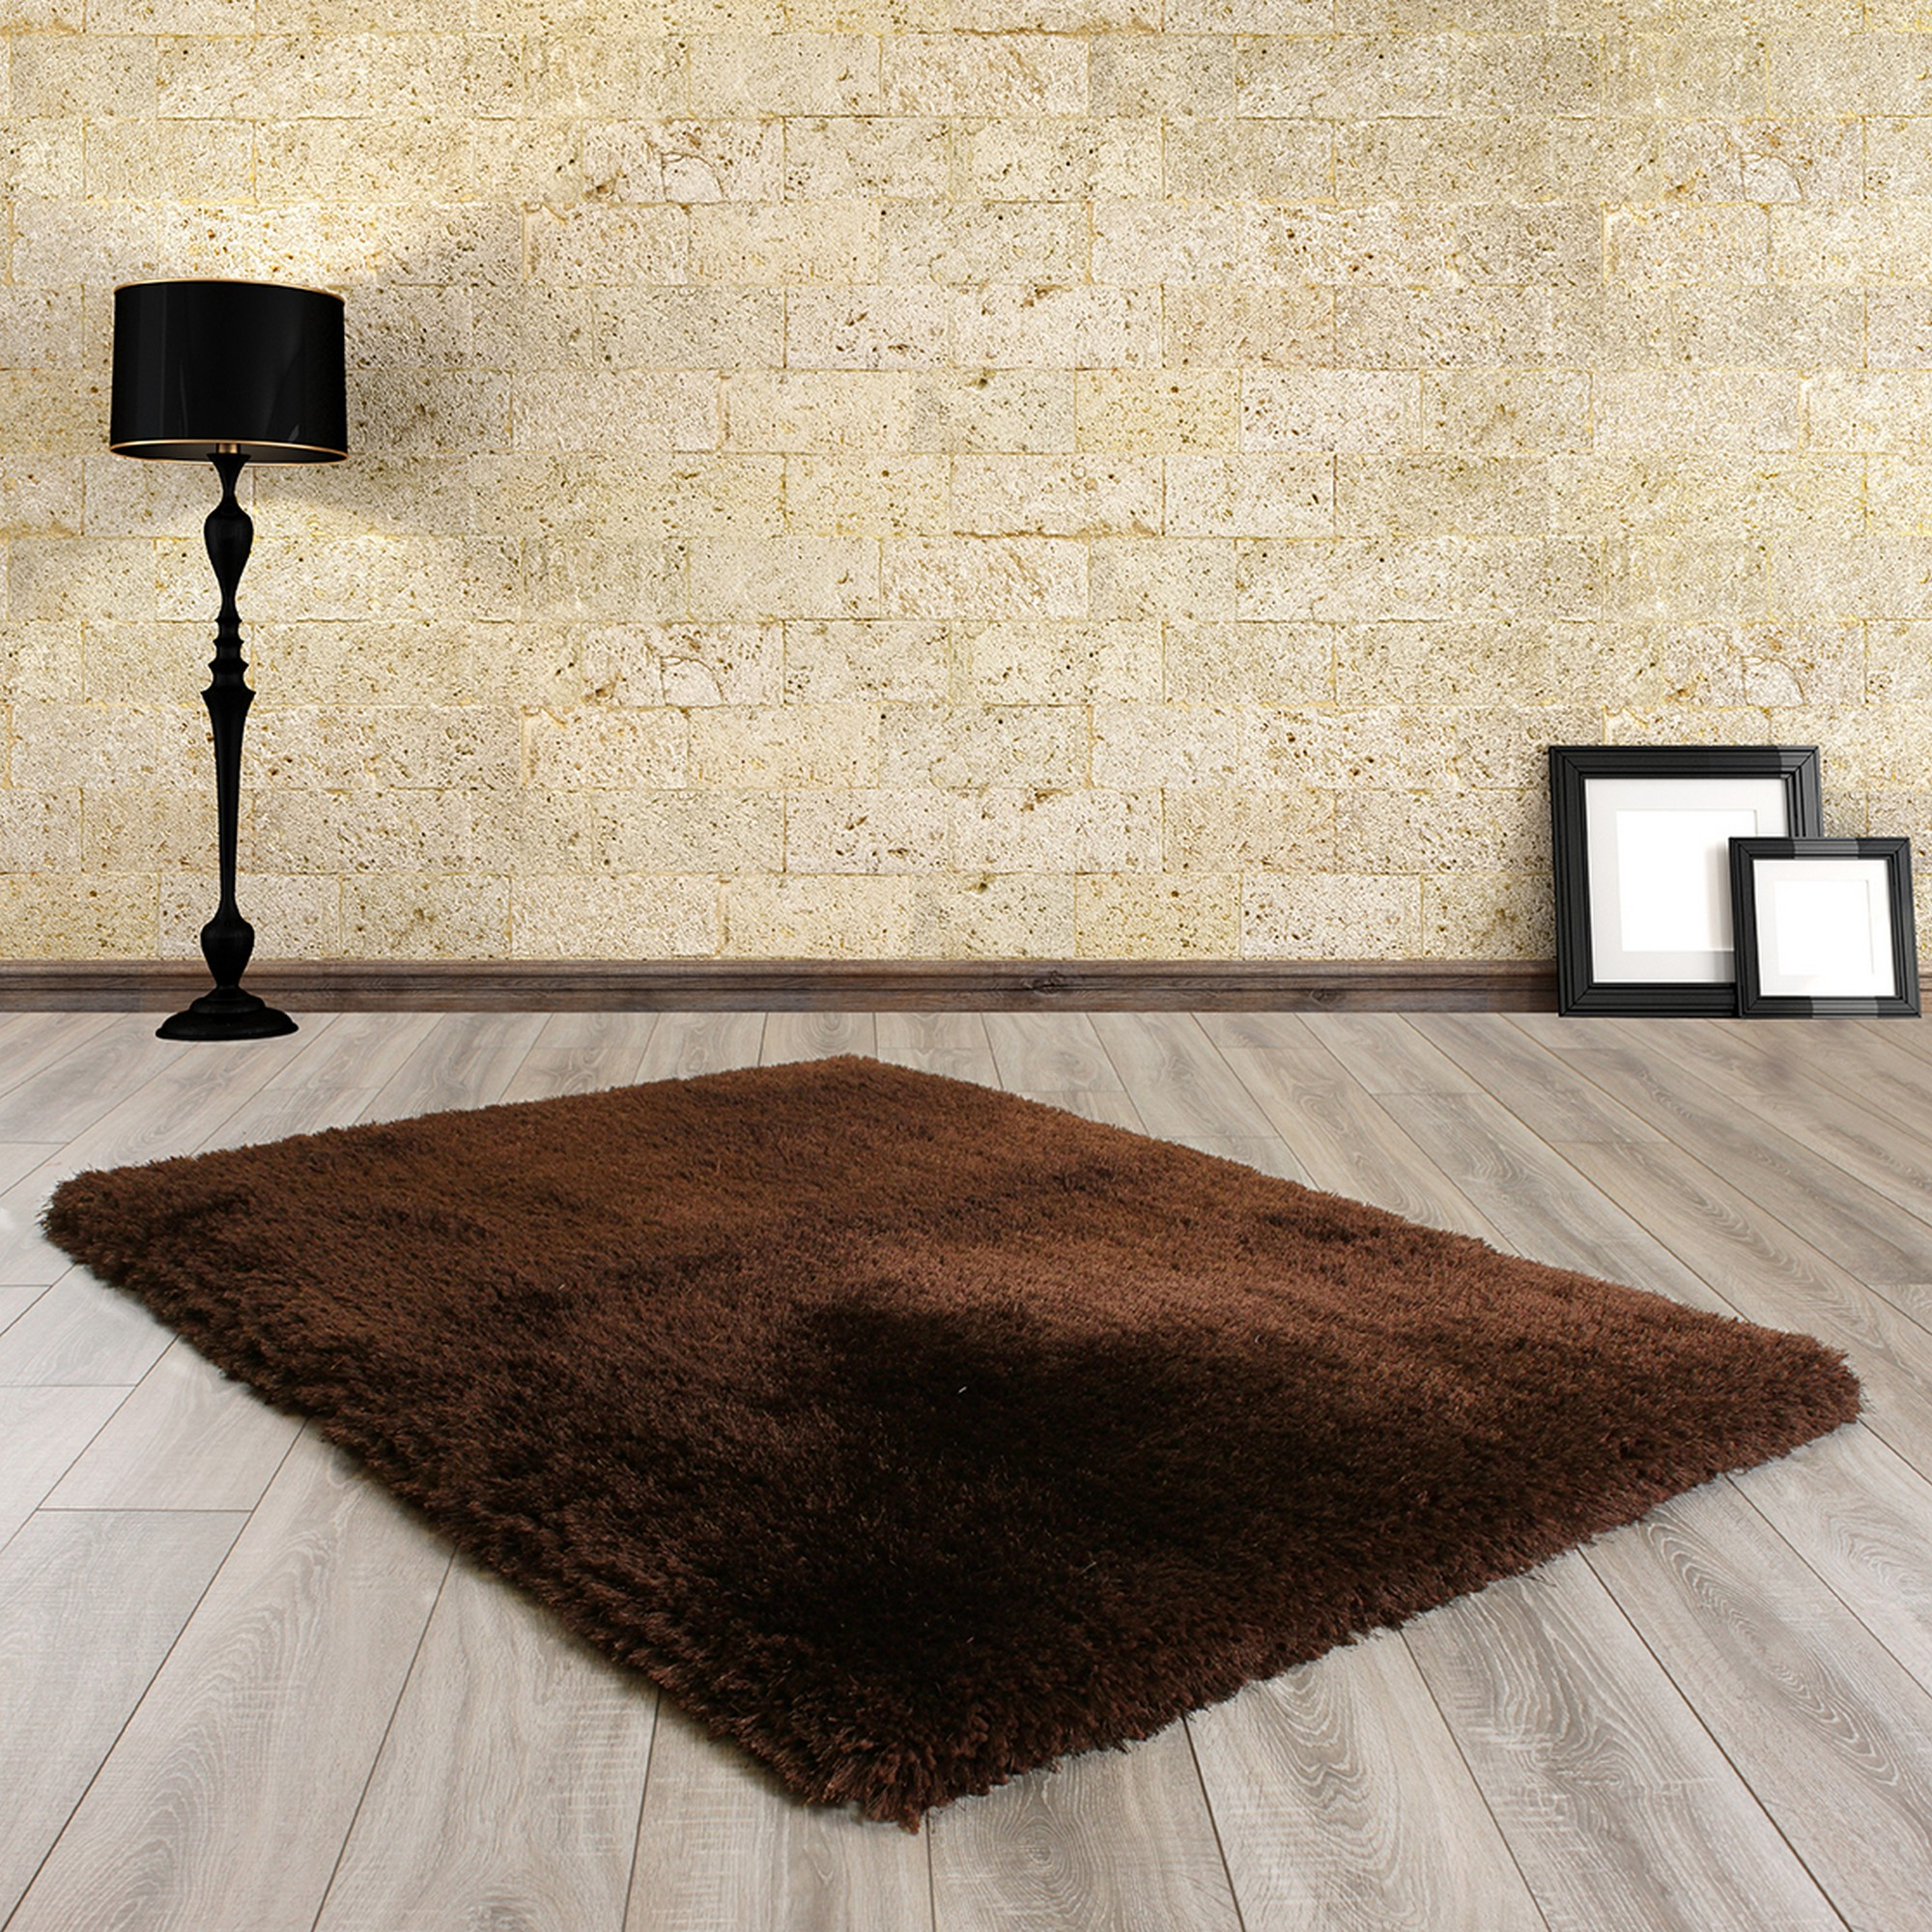 Mayfair Shaggy Rugs in Chocolate Brown